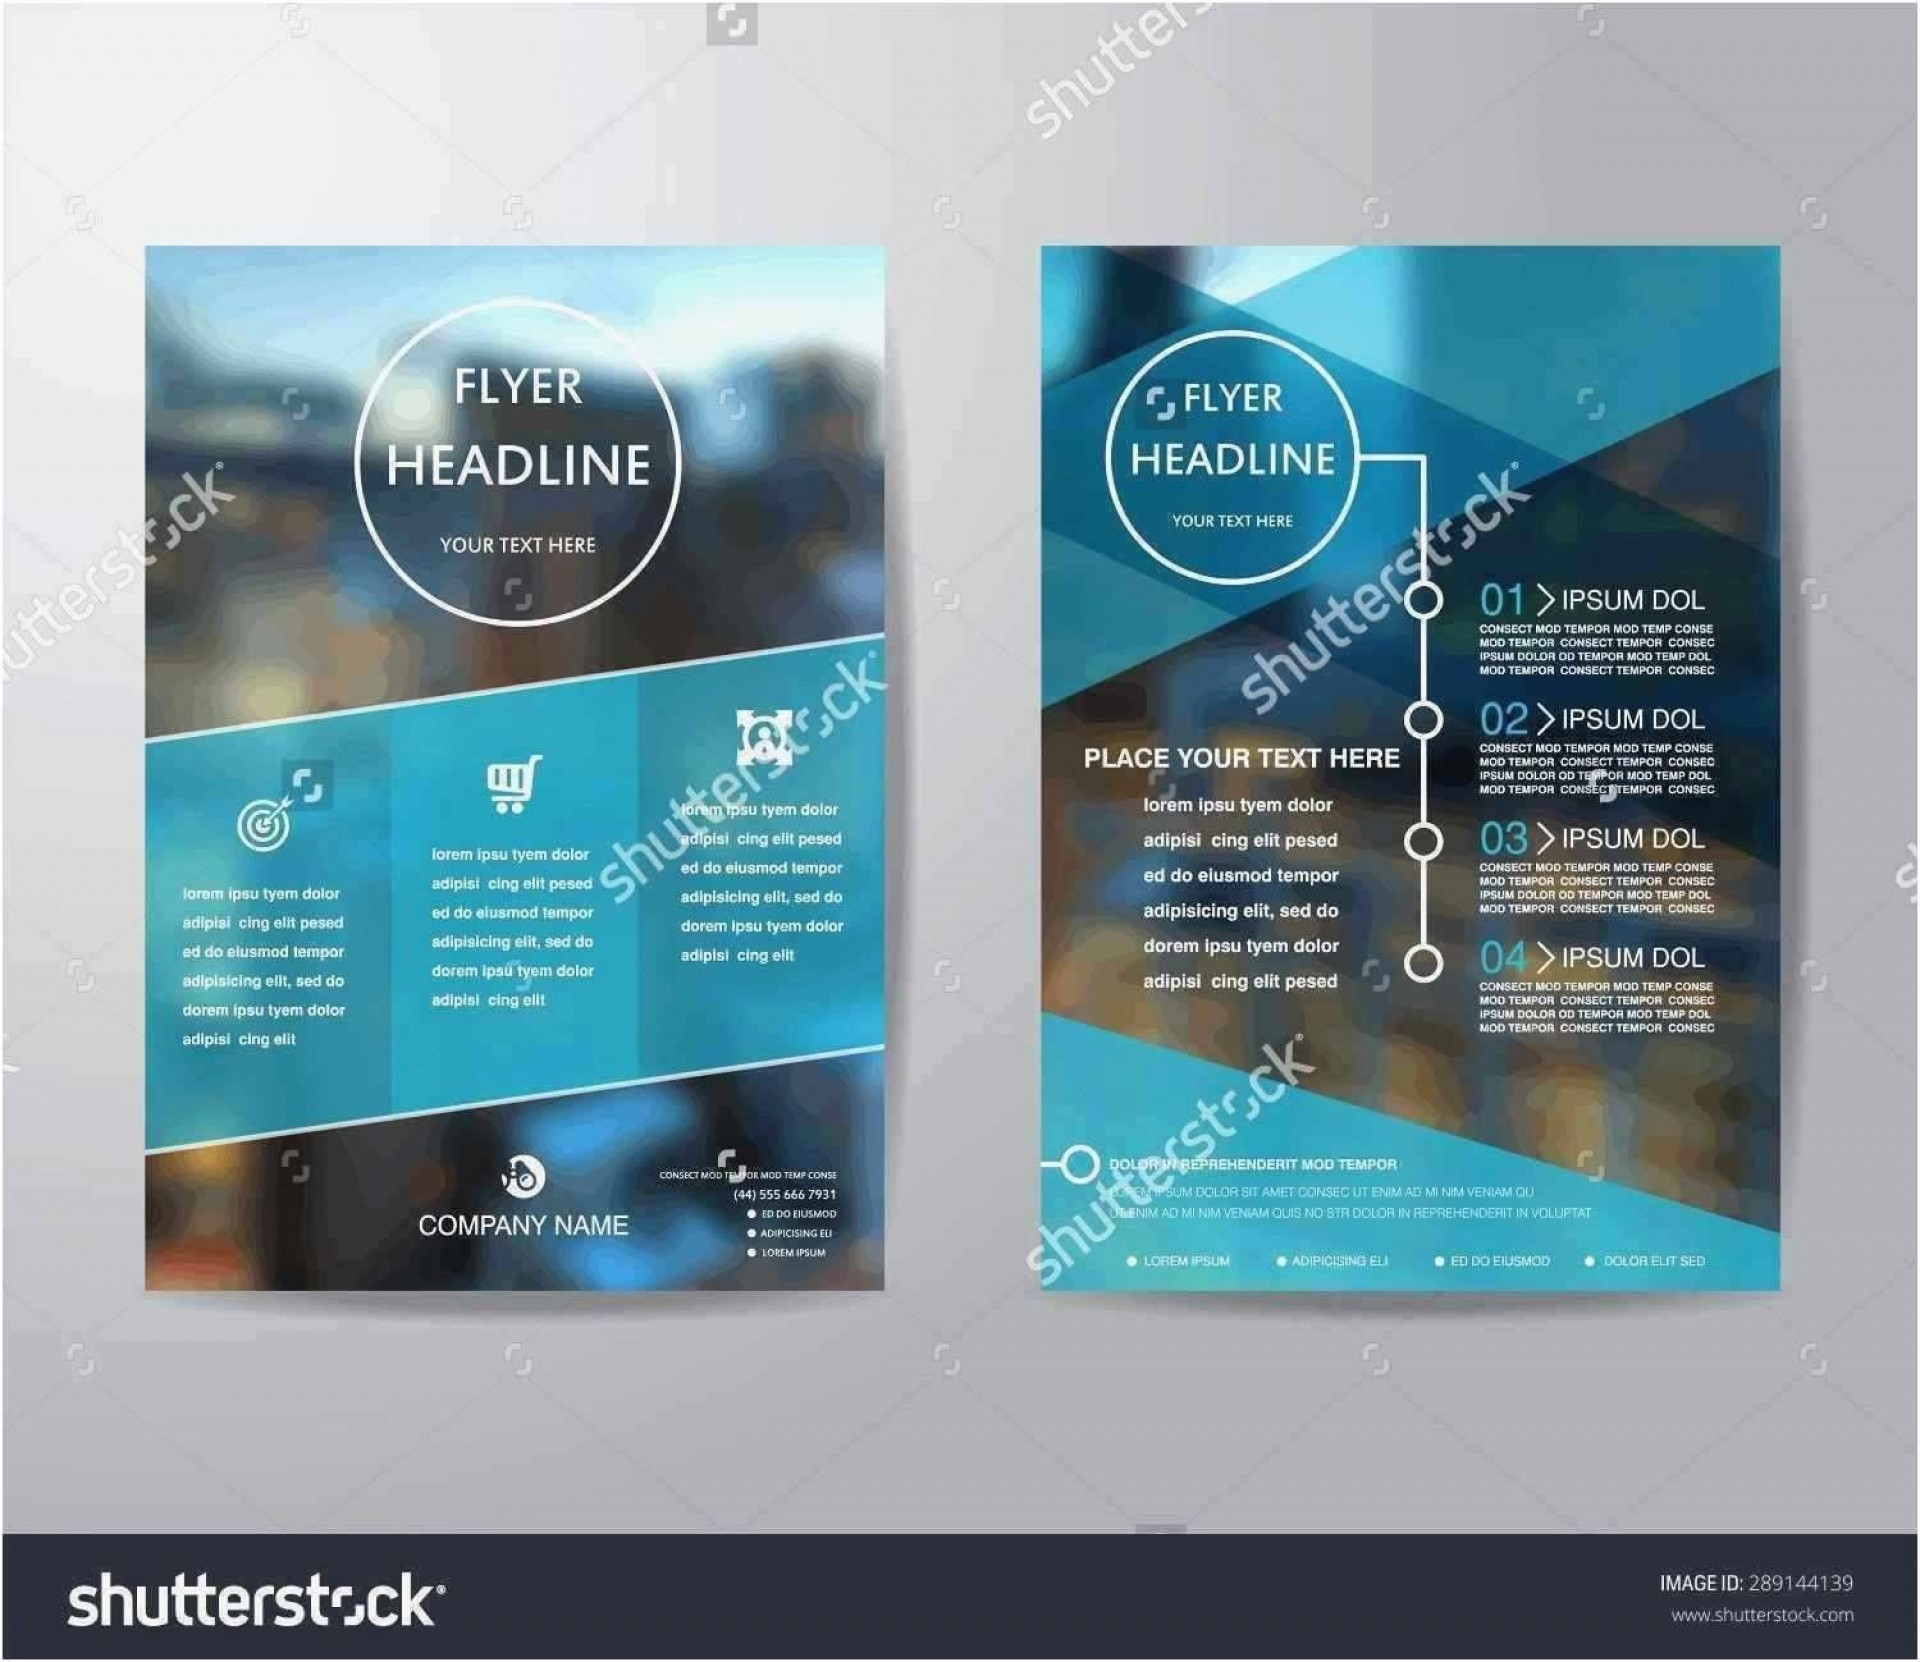 003 Magnificent Microsoft Publisher Brochure Template Photo  Templates Tri Fold Free Office Download1920